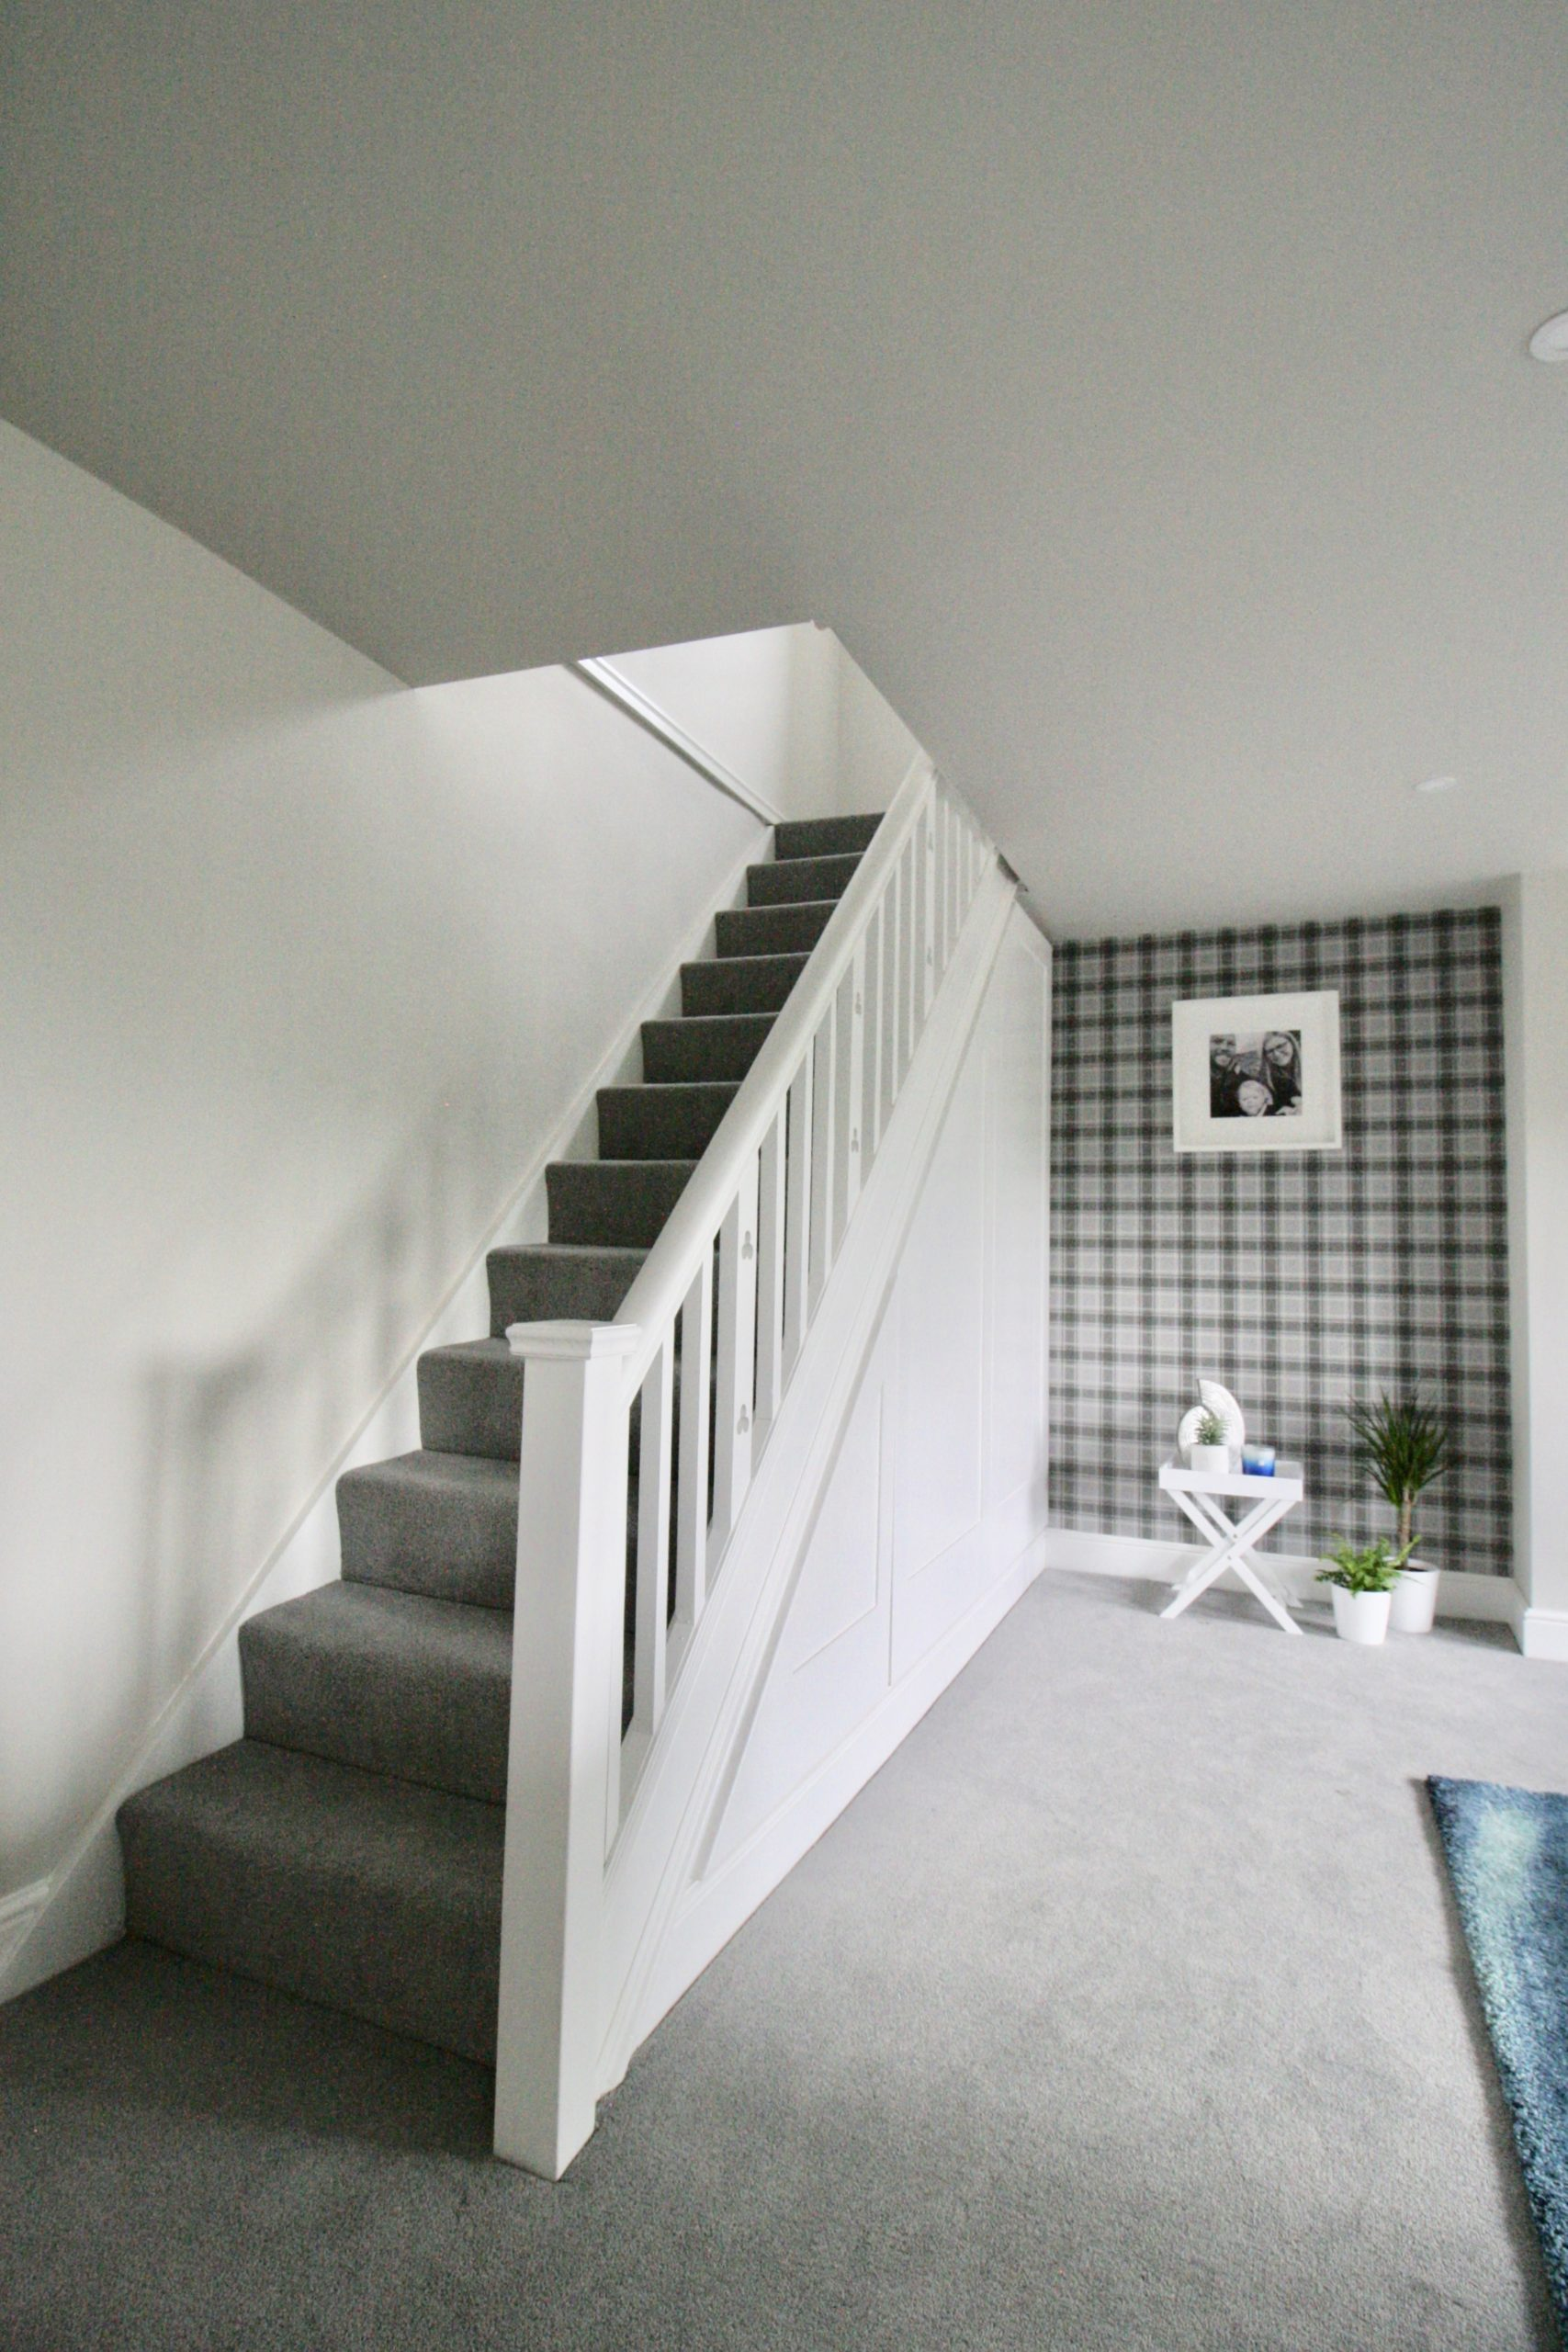 White painted staircase with square newel post in grey and white TV room with grey carpet